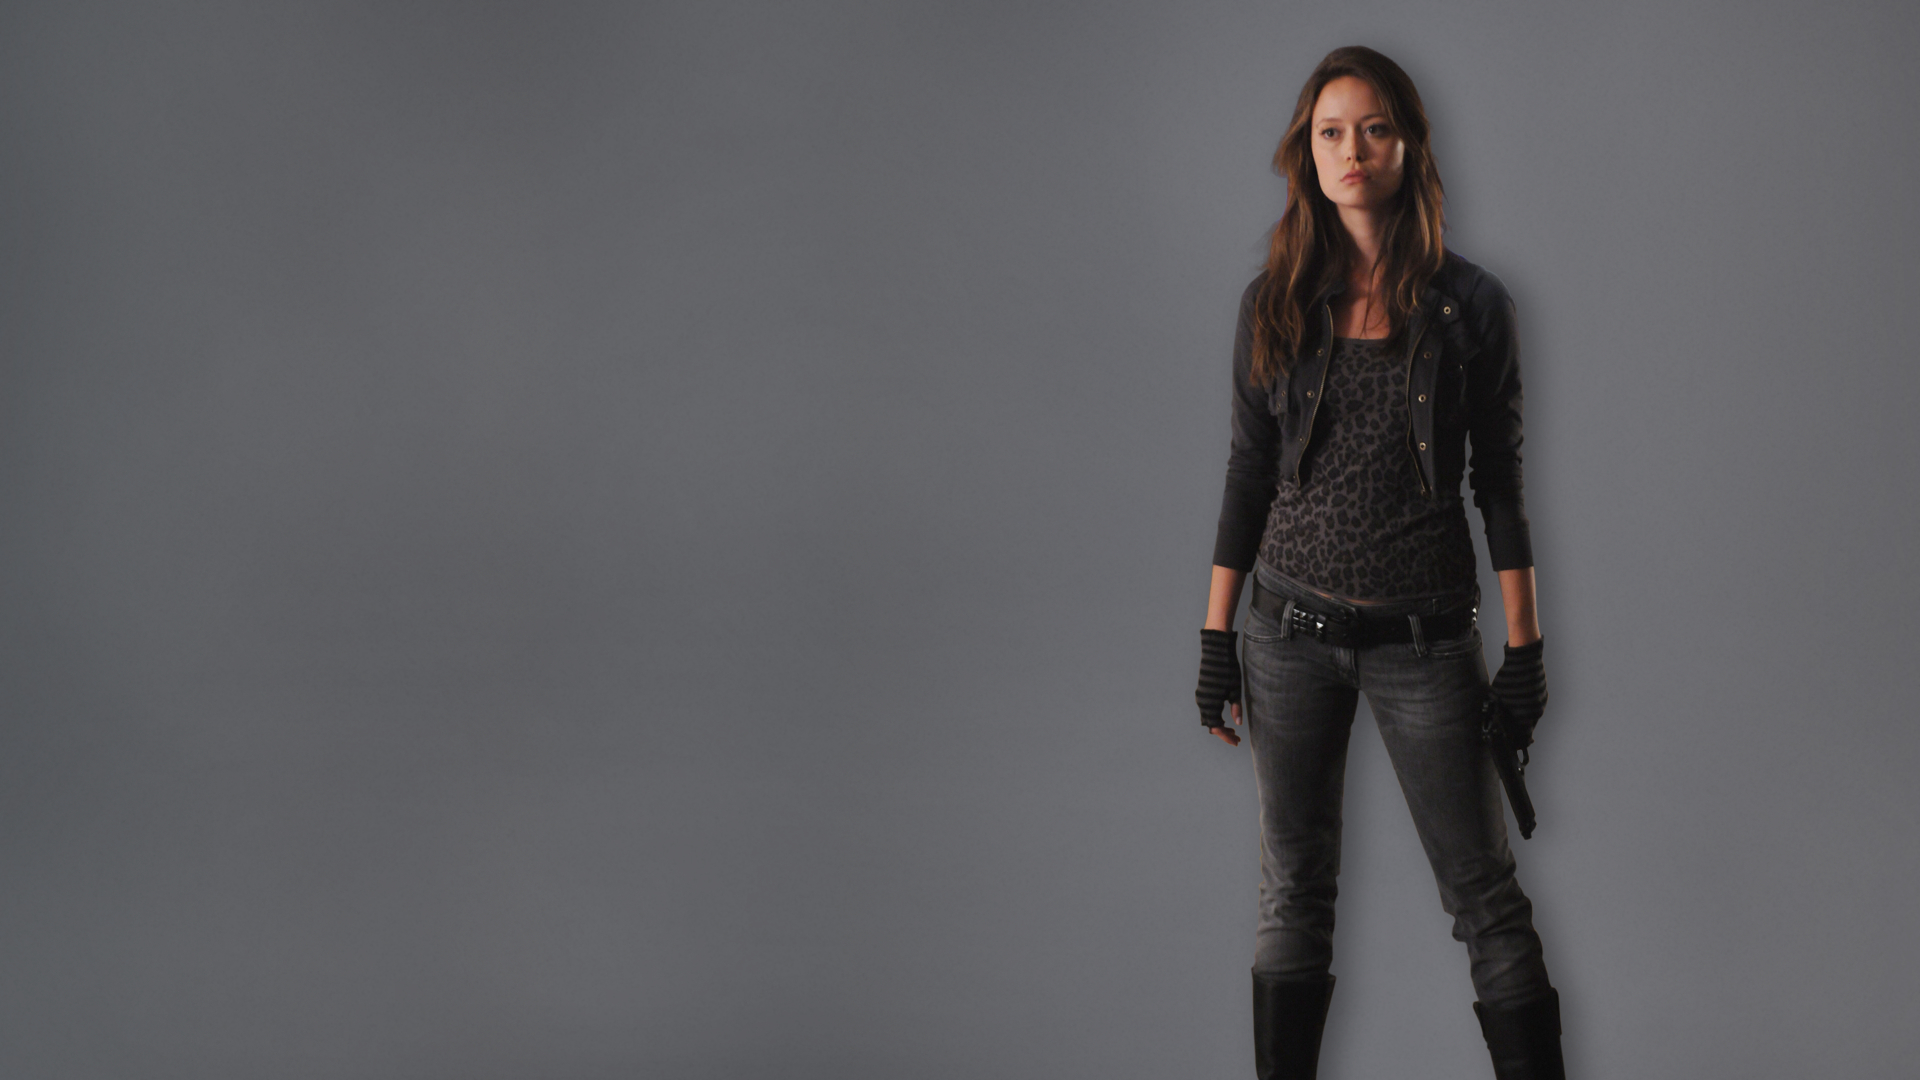 summer glau terminator The HD Wallpaper